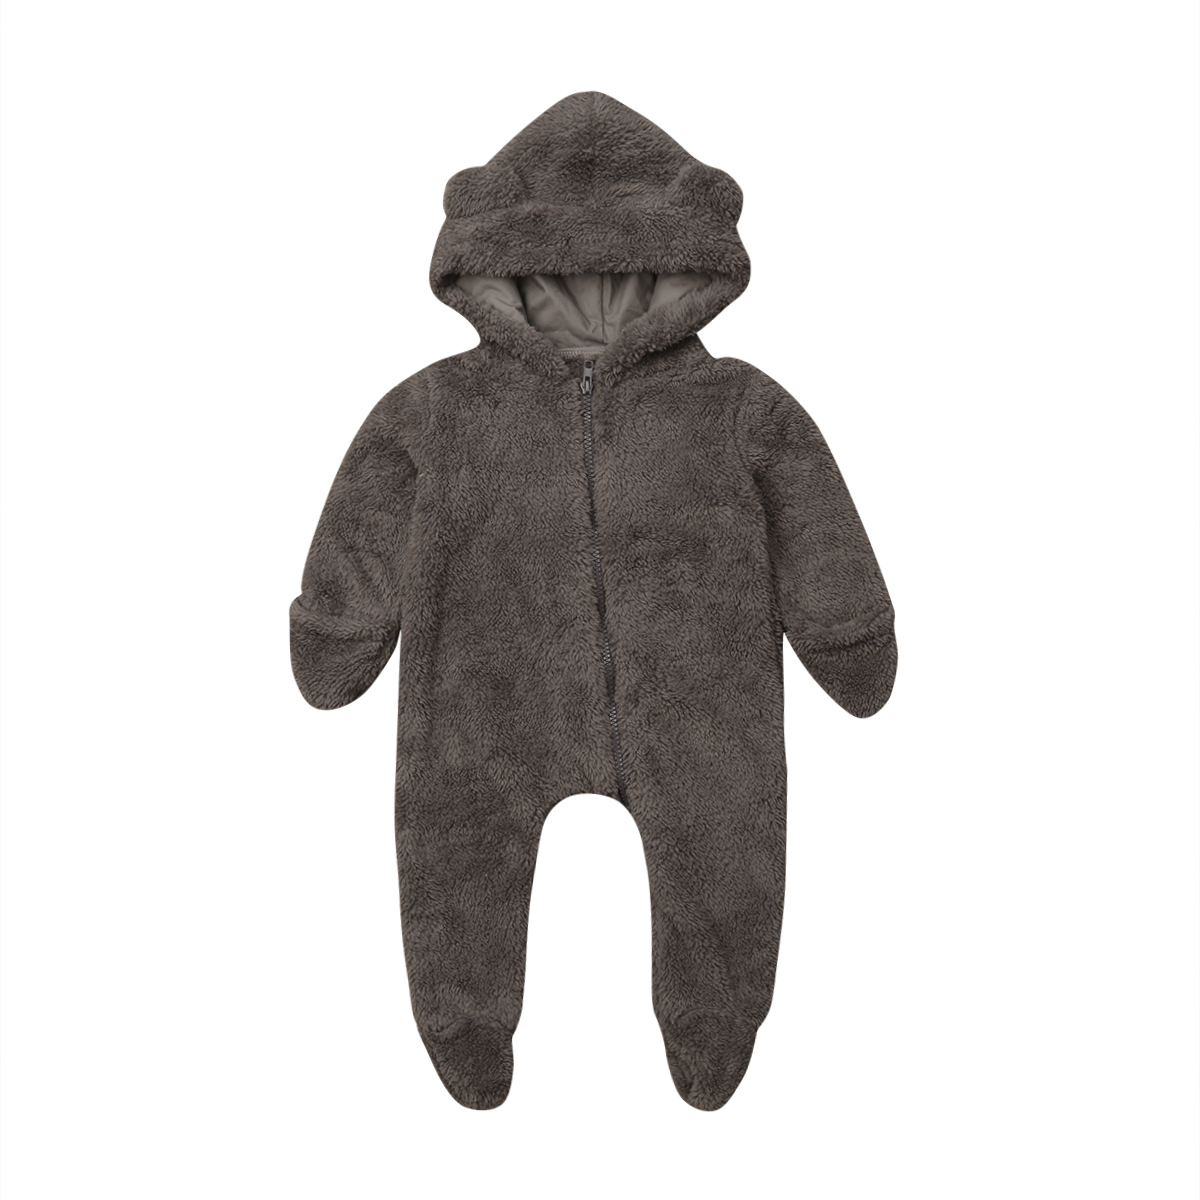 Newborn Baby Girl Boy Fuzzy Clothes Hooded Romper Bodysuit Jumpsuit Outfit 0-24M